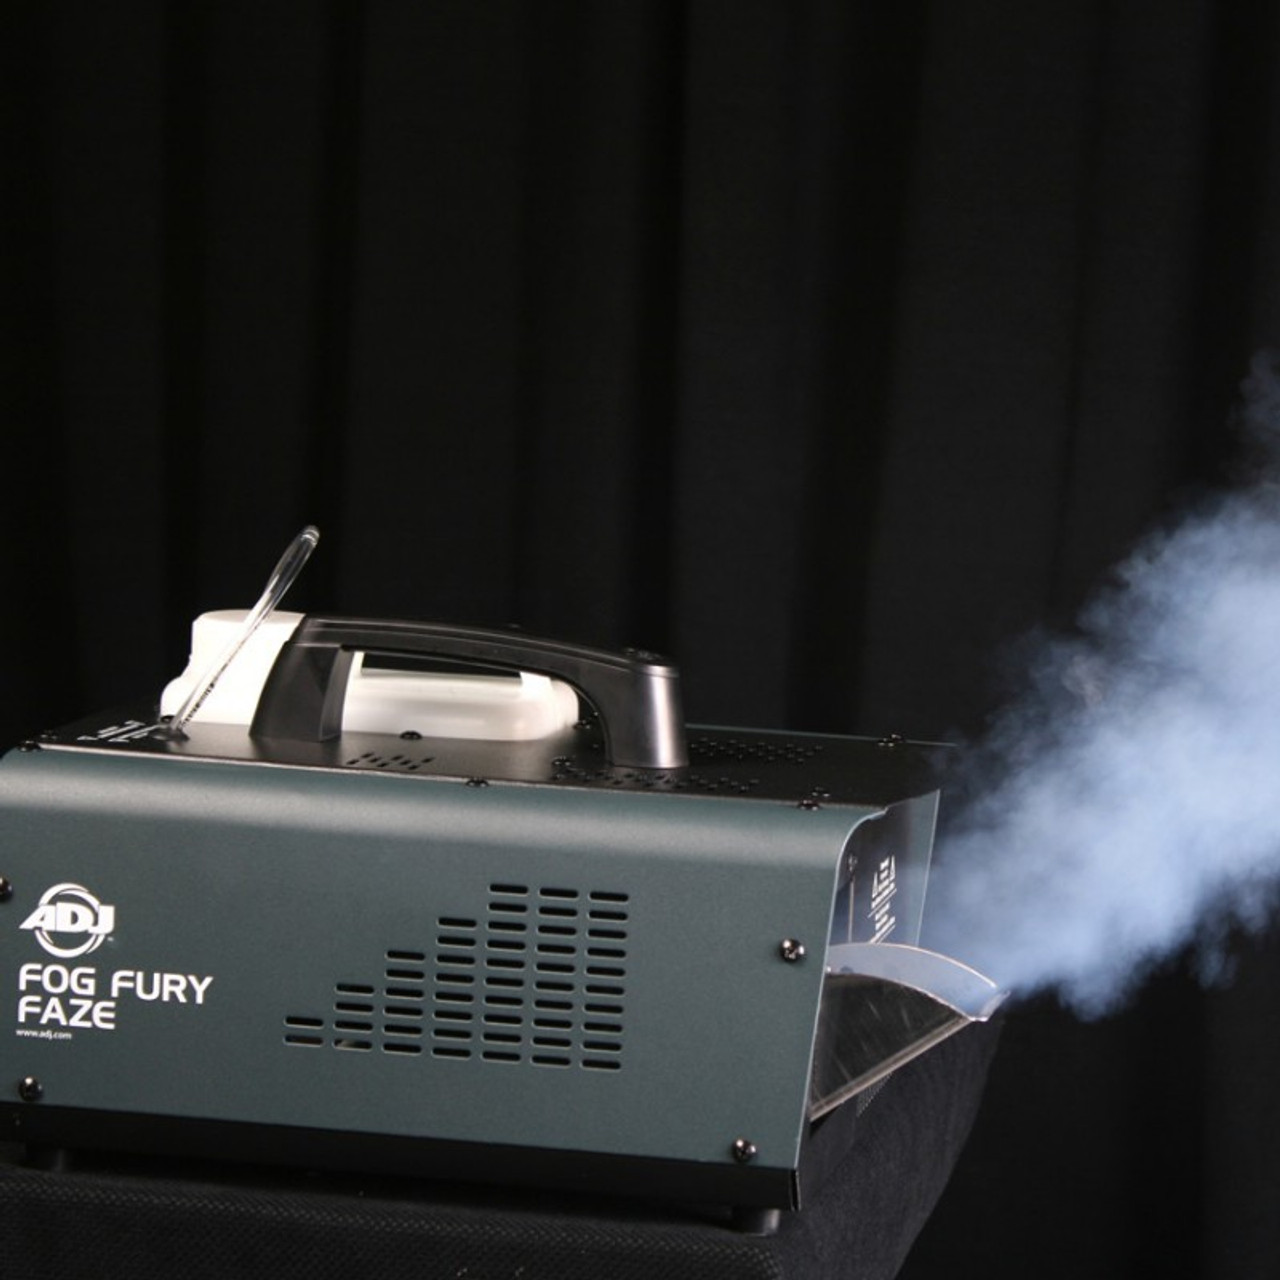 ADJ Fog Fury Faze Water-based HAZE / Fog Machine